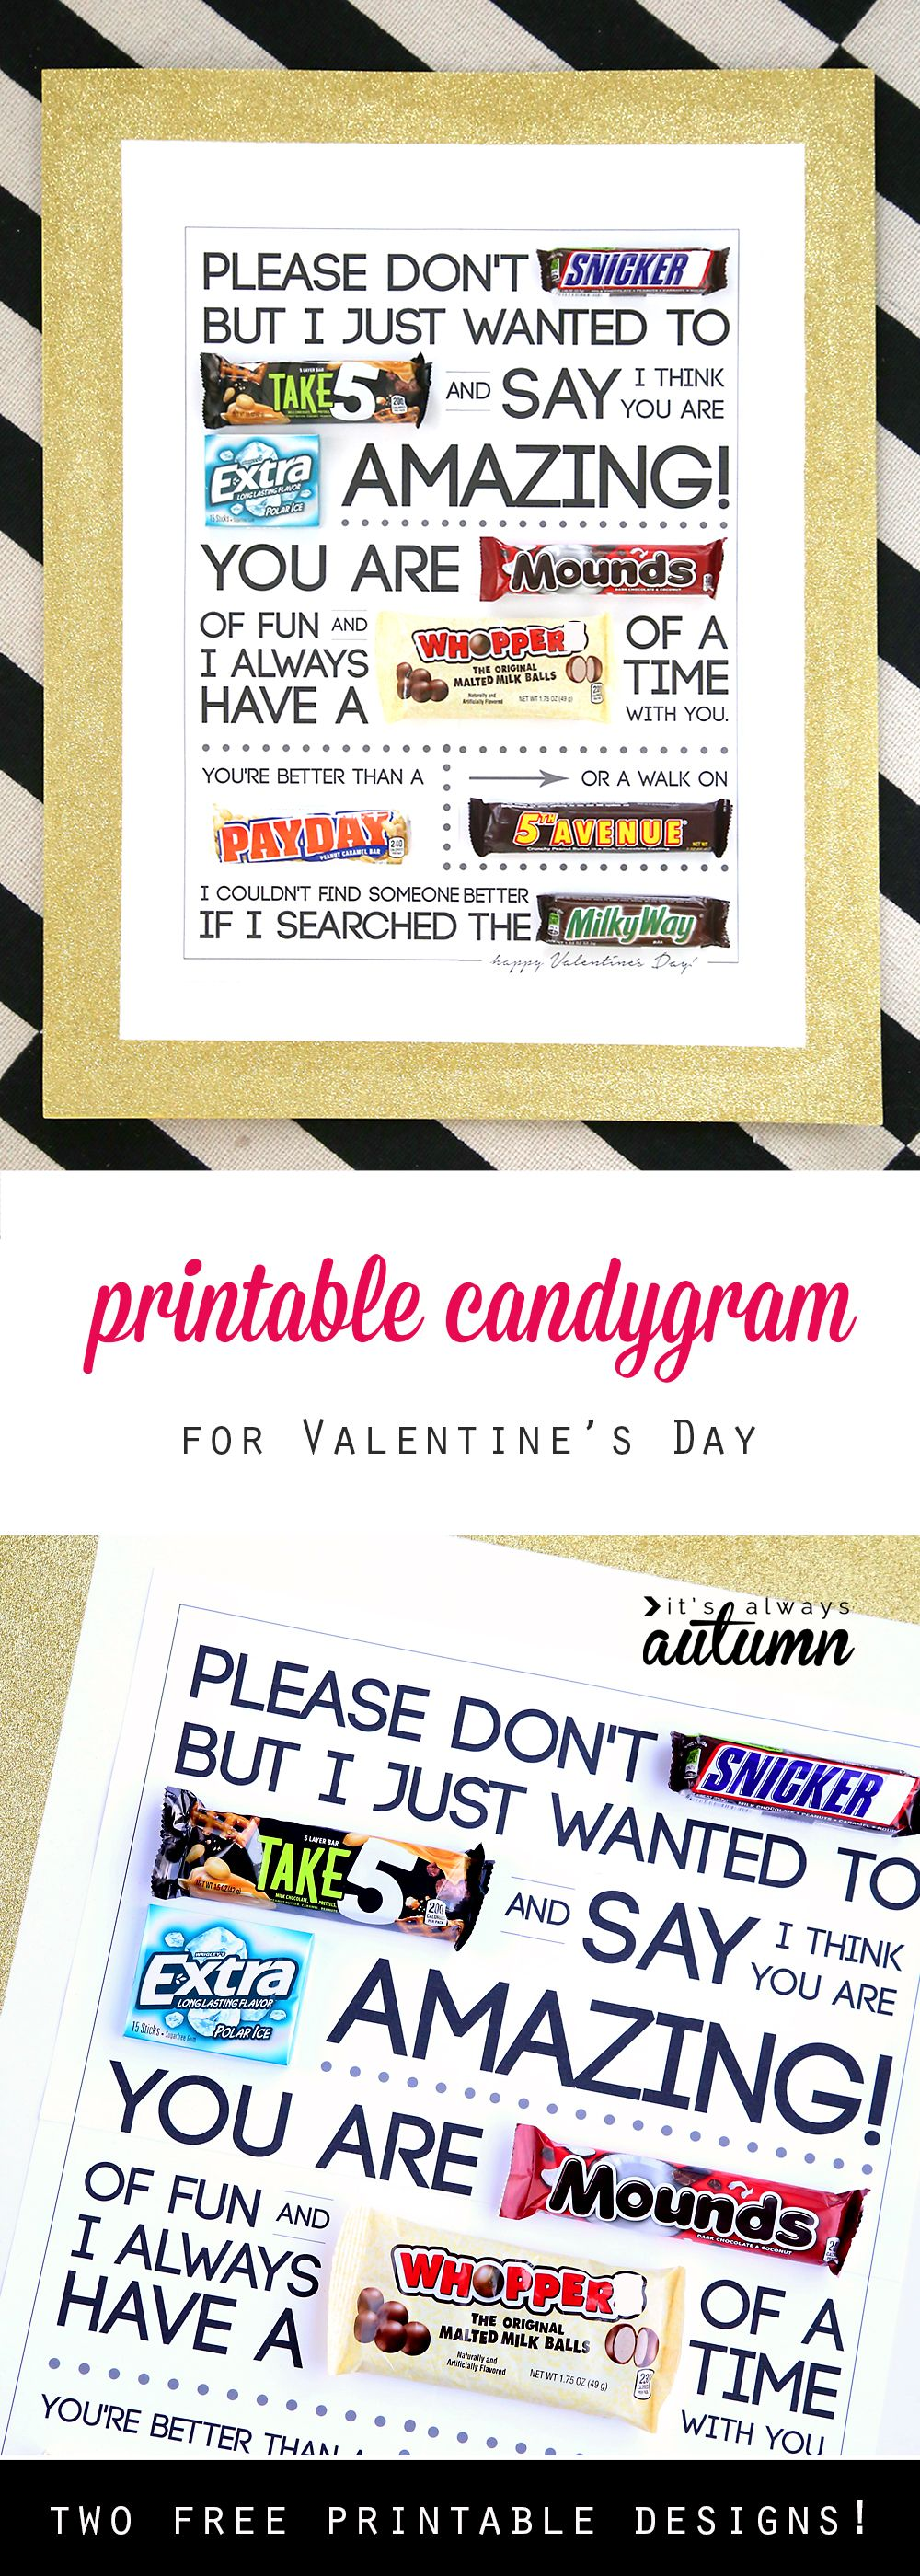 Free printable Valentine's Day candygram (candy poster) – It's Always Autumn